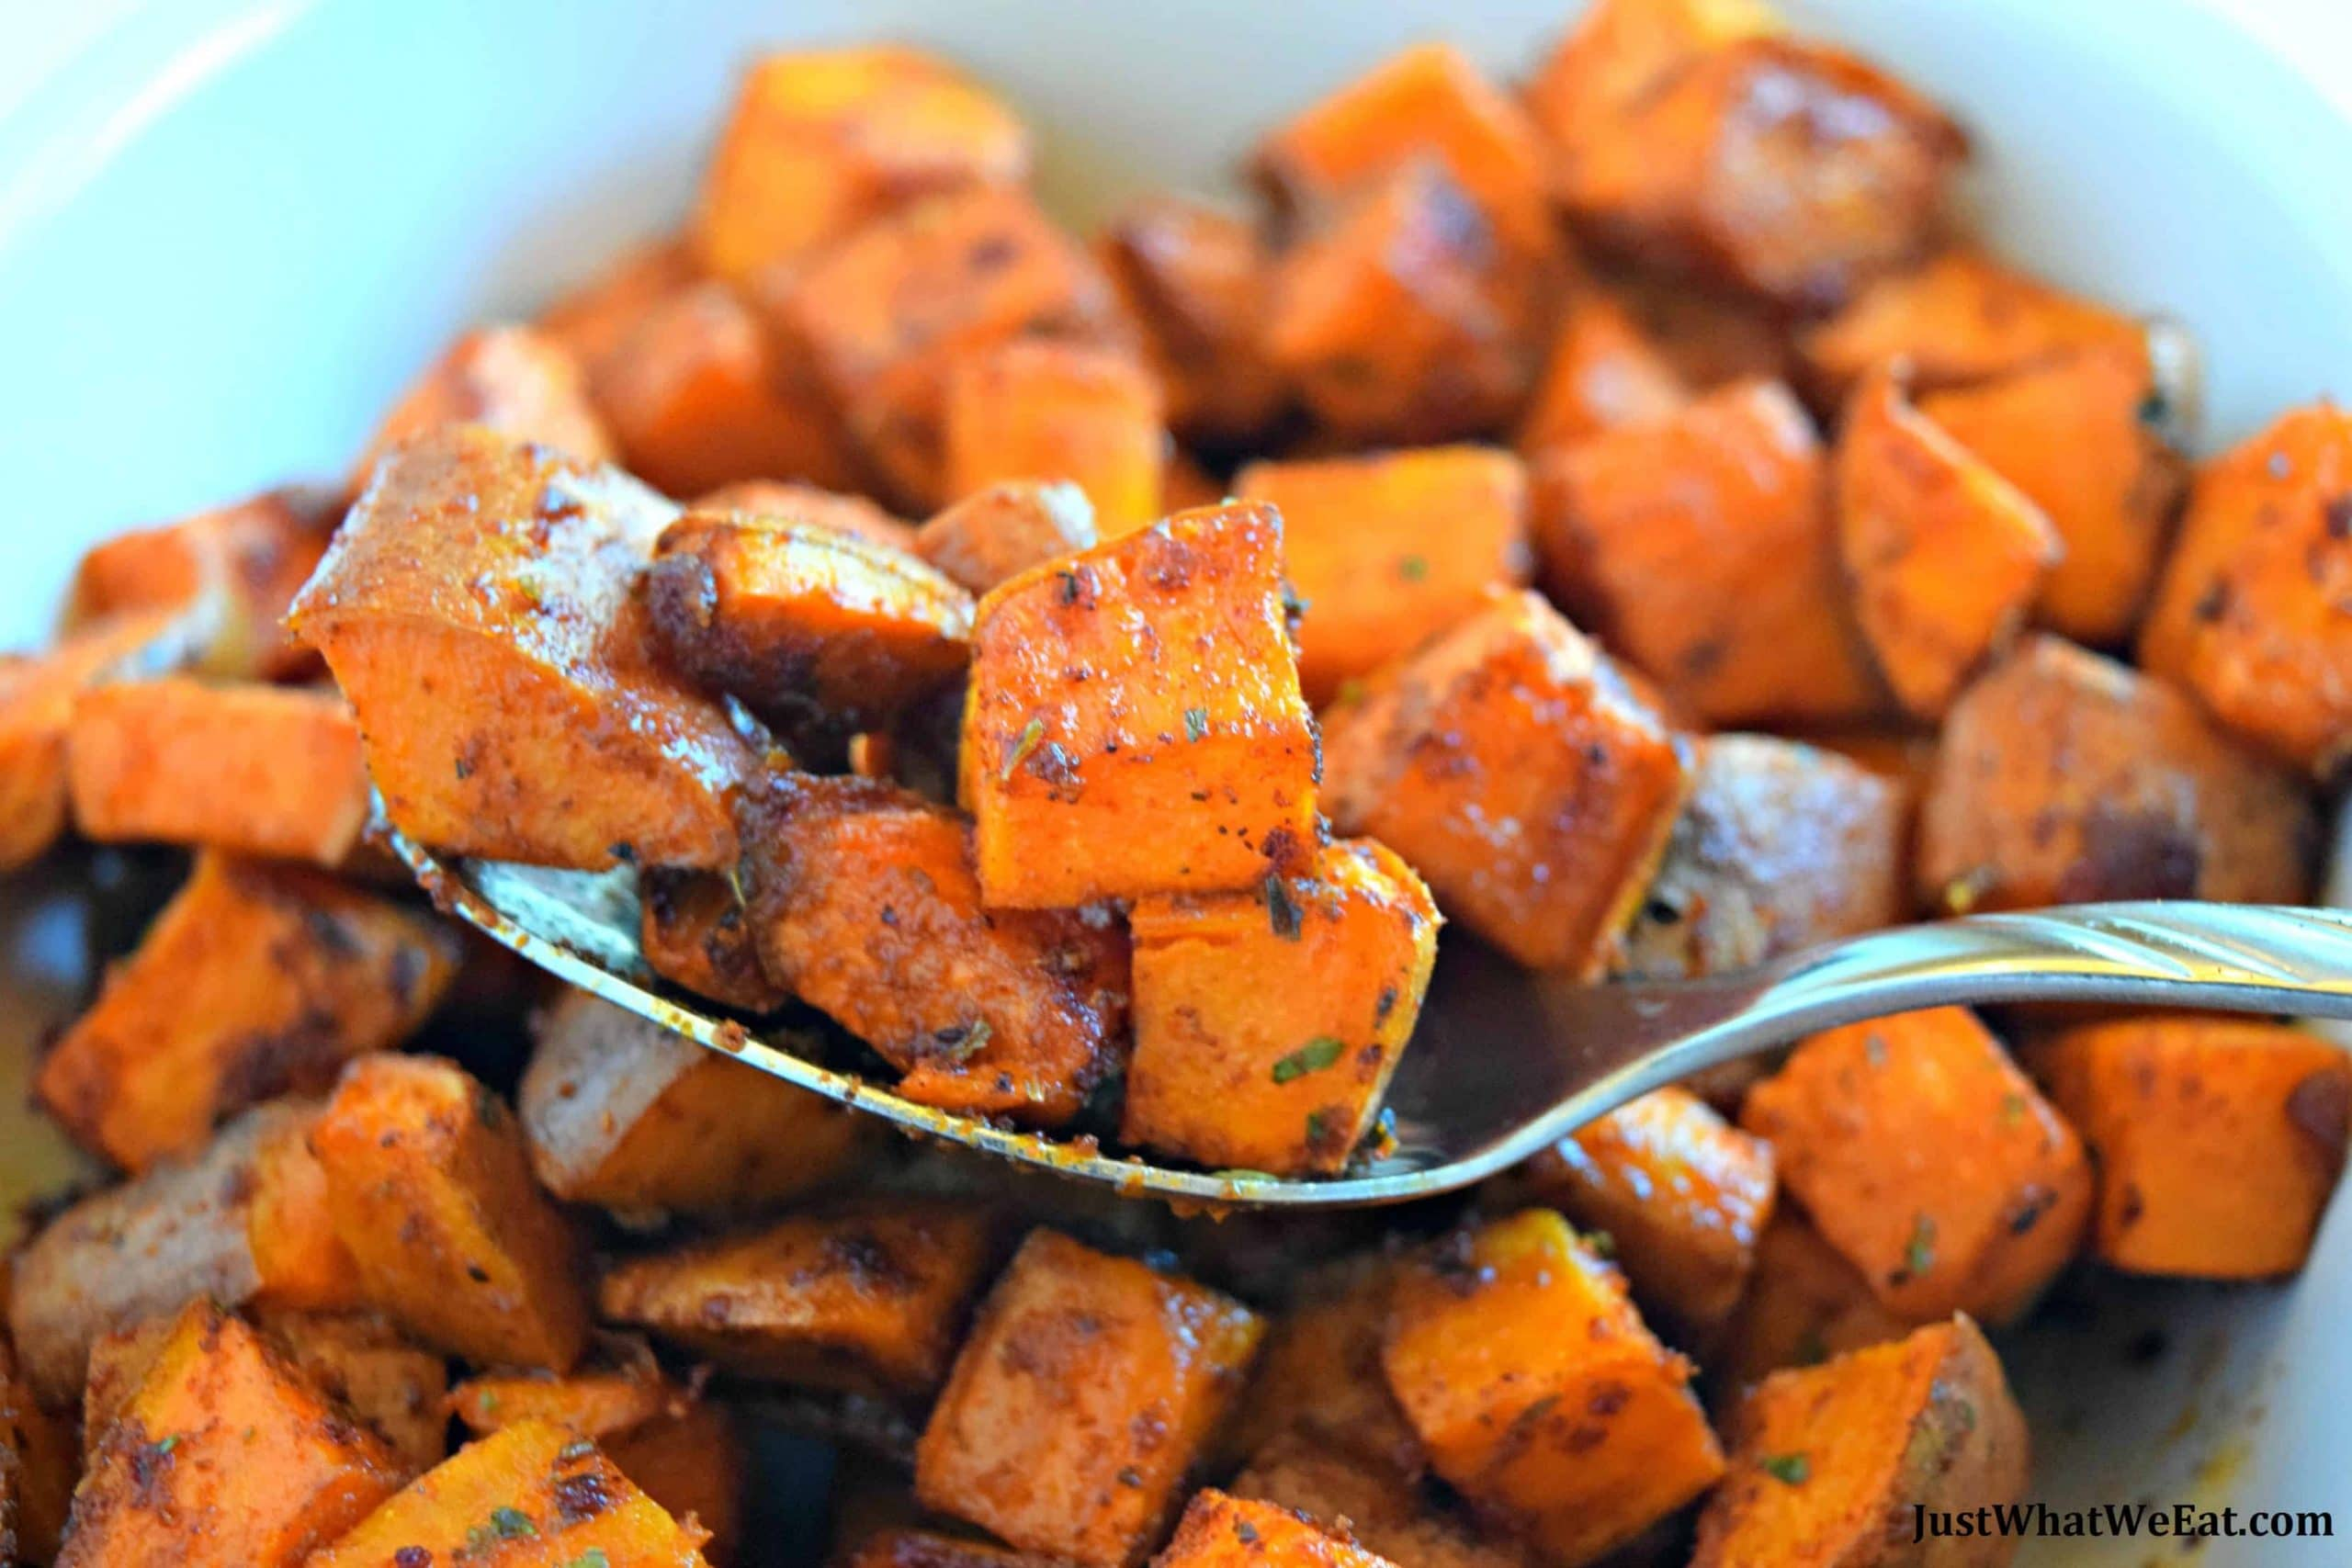 Bbq Roasted Sweet Potatoes Gluten Free Vegan Just What We Eat